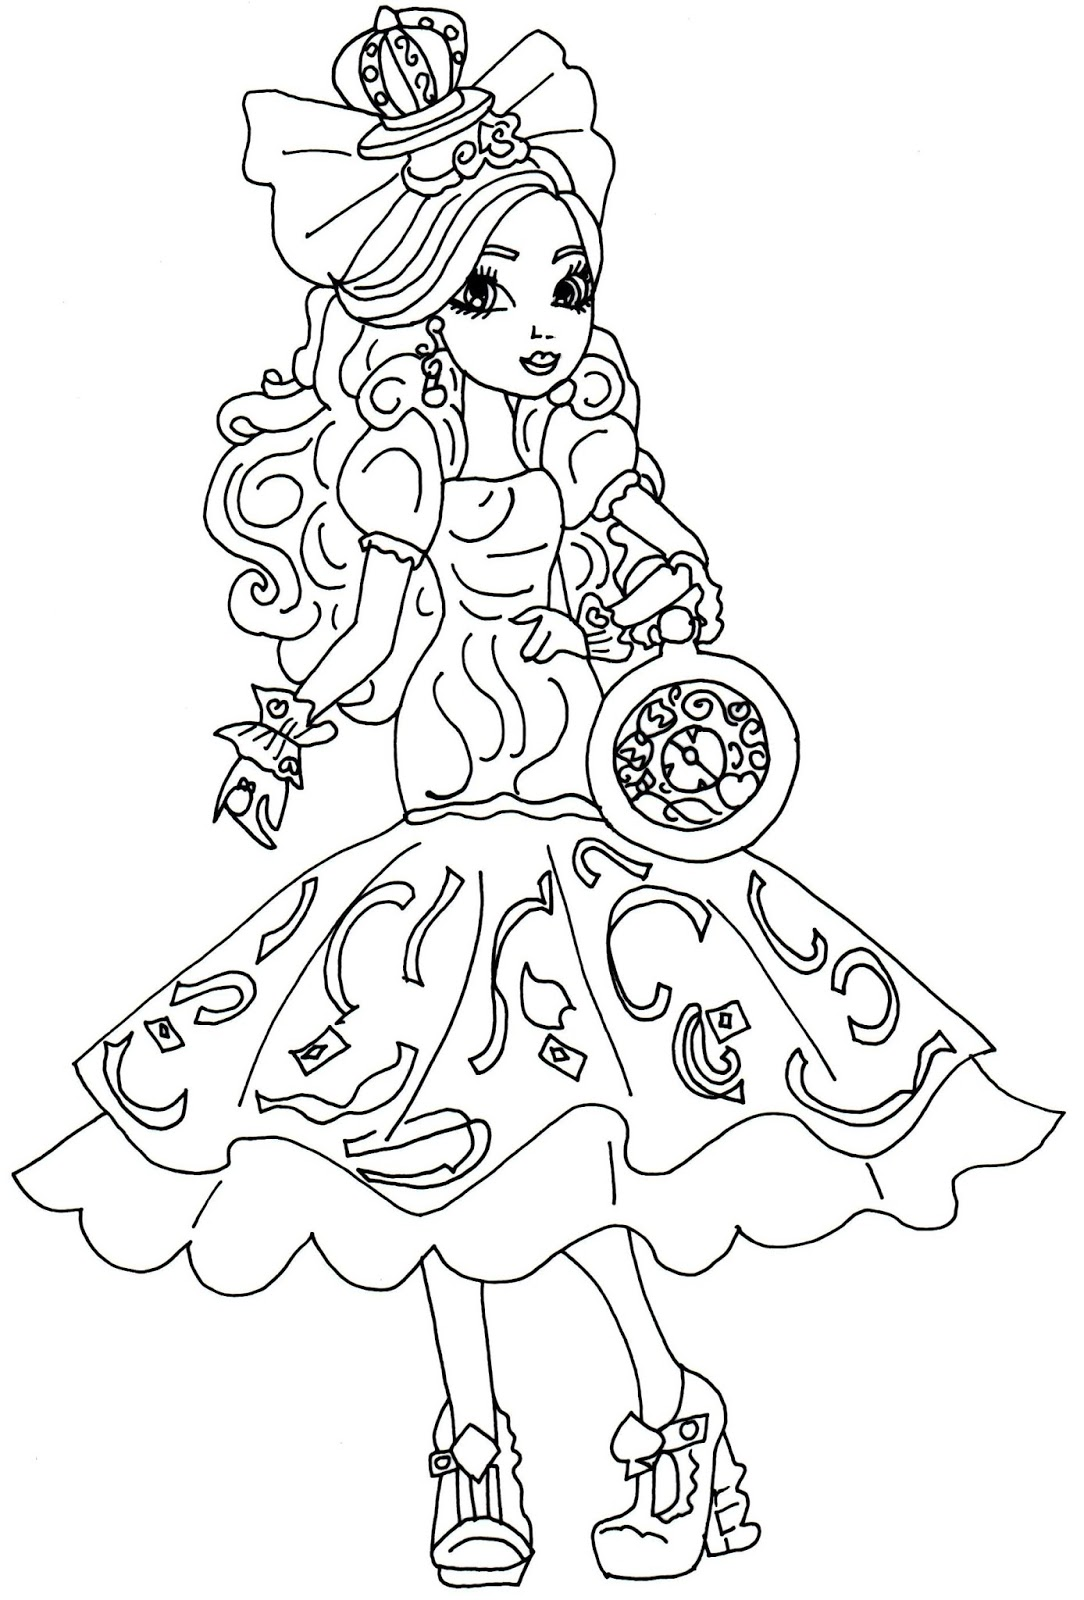 Printable coloring pages ever after high - Apple White Way Too Wonderland Ever After High Coloring Page